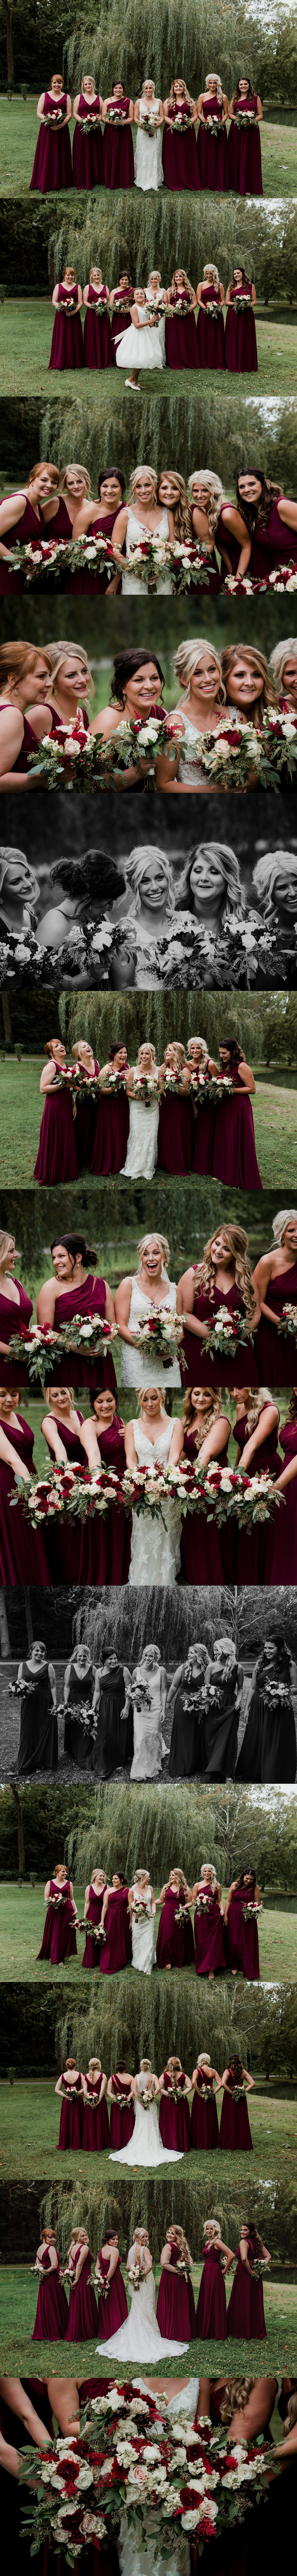 Columbus Ohio Wedding Bridesmaids